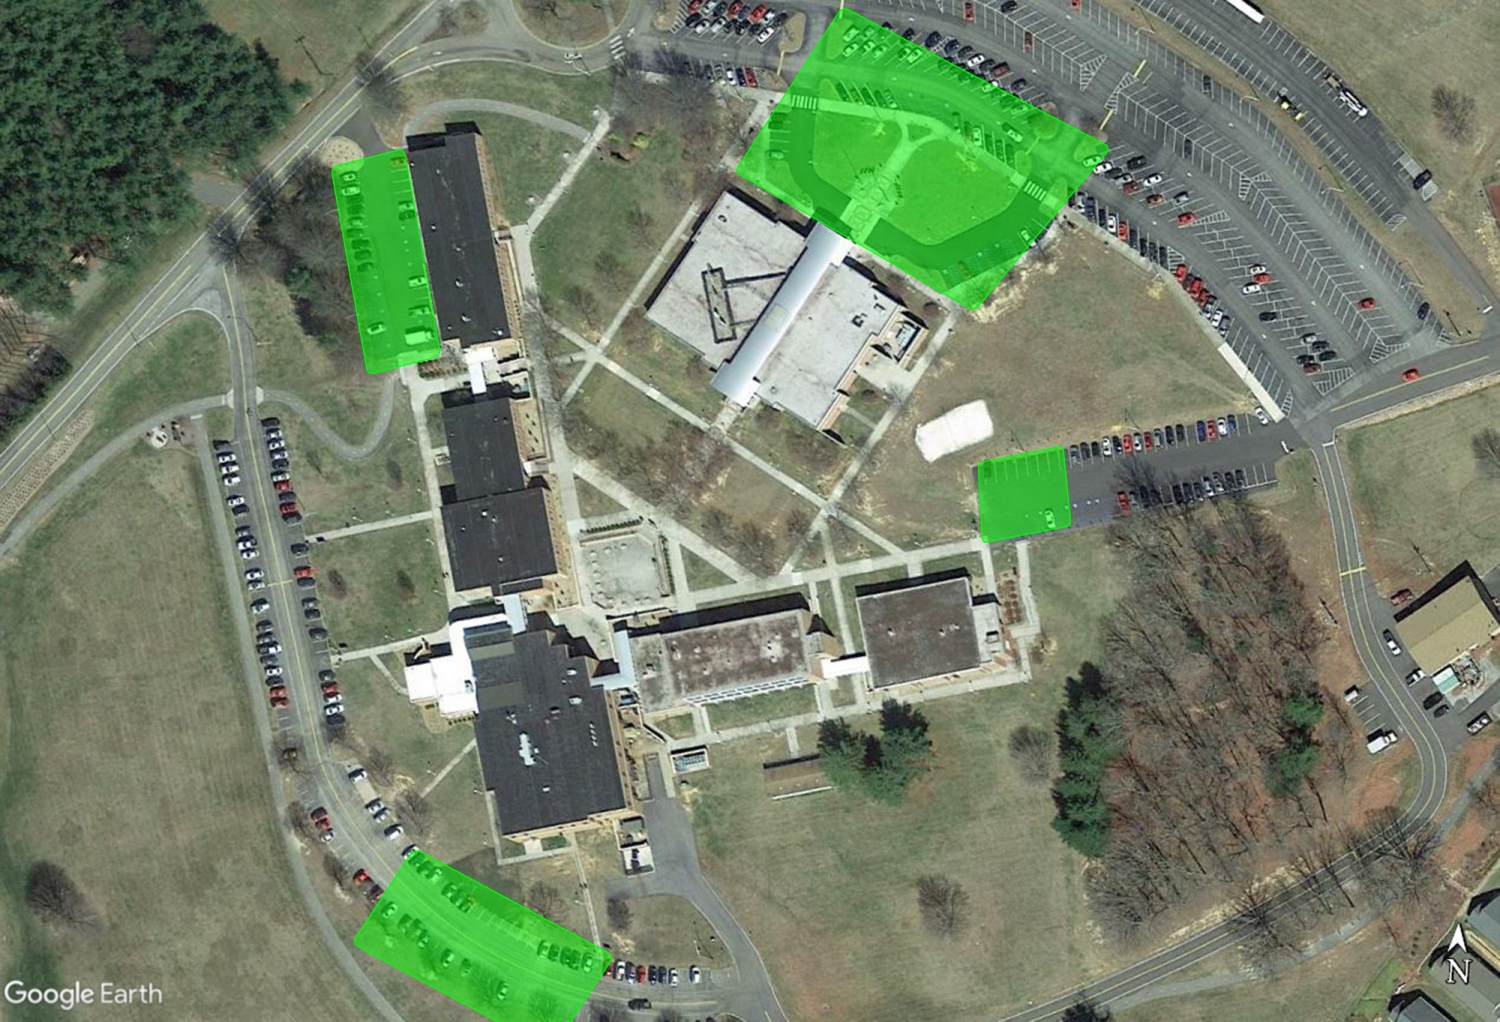 Map showing parking areas where WCC students can access Wifi - complete description listed below